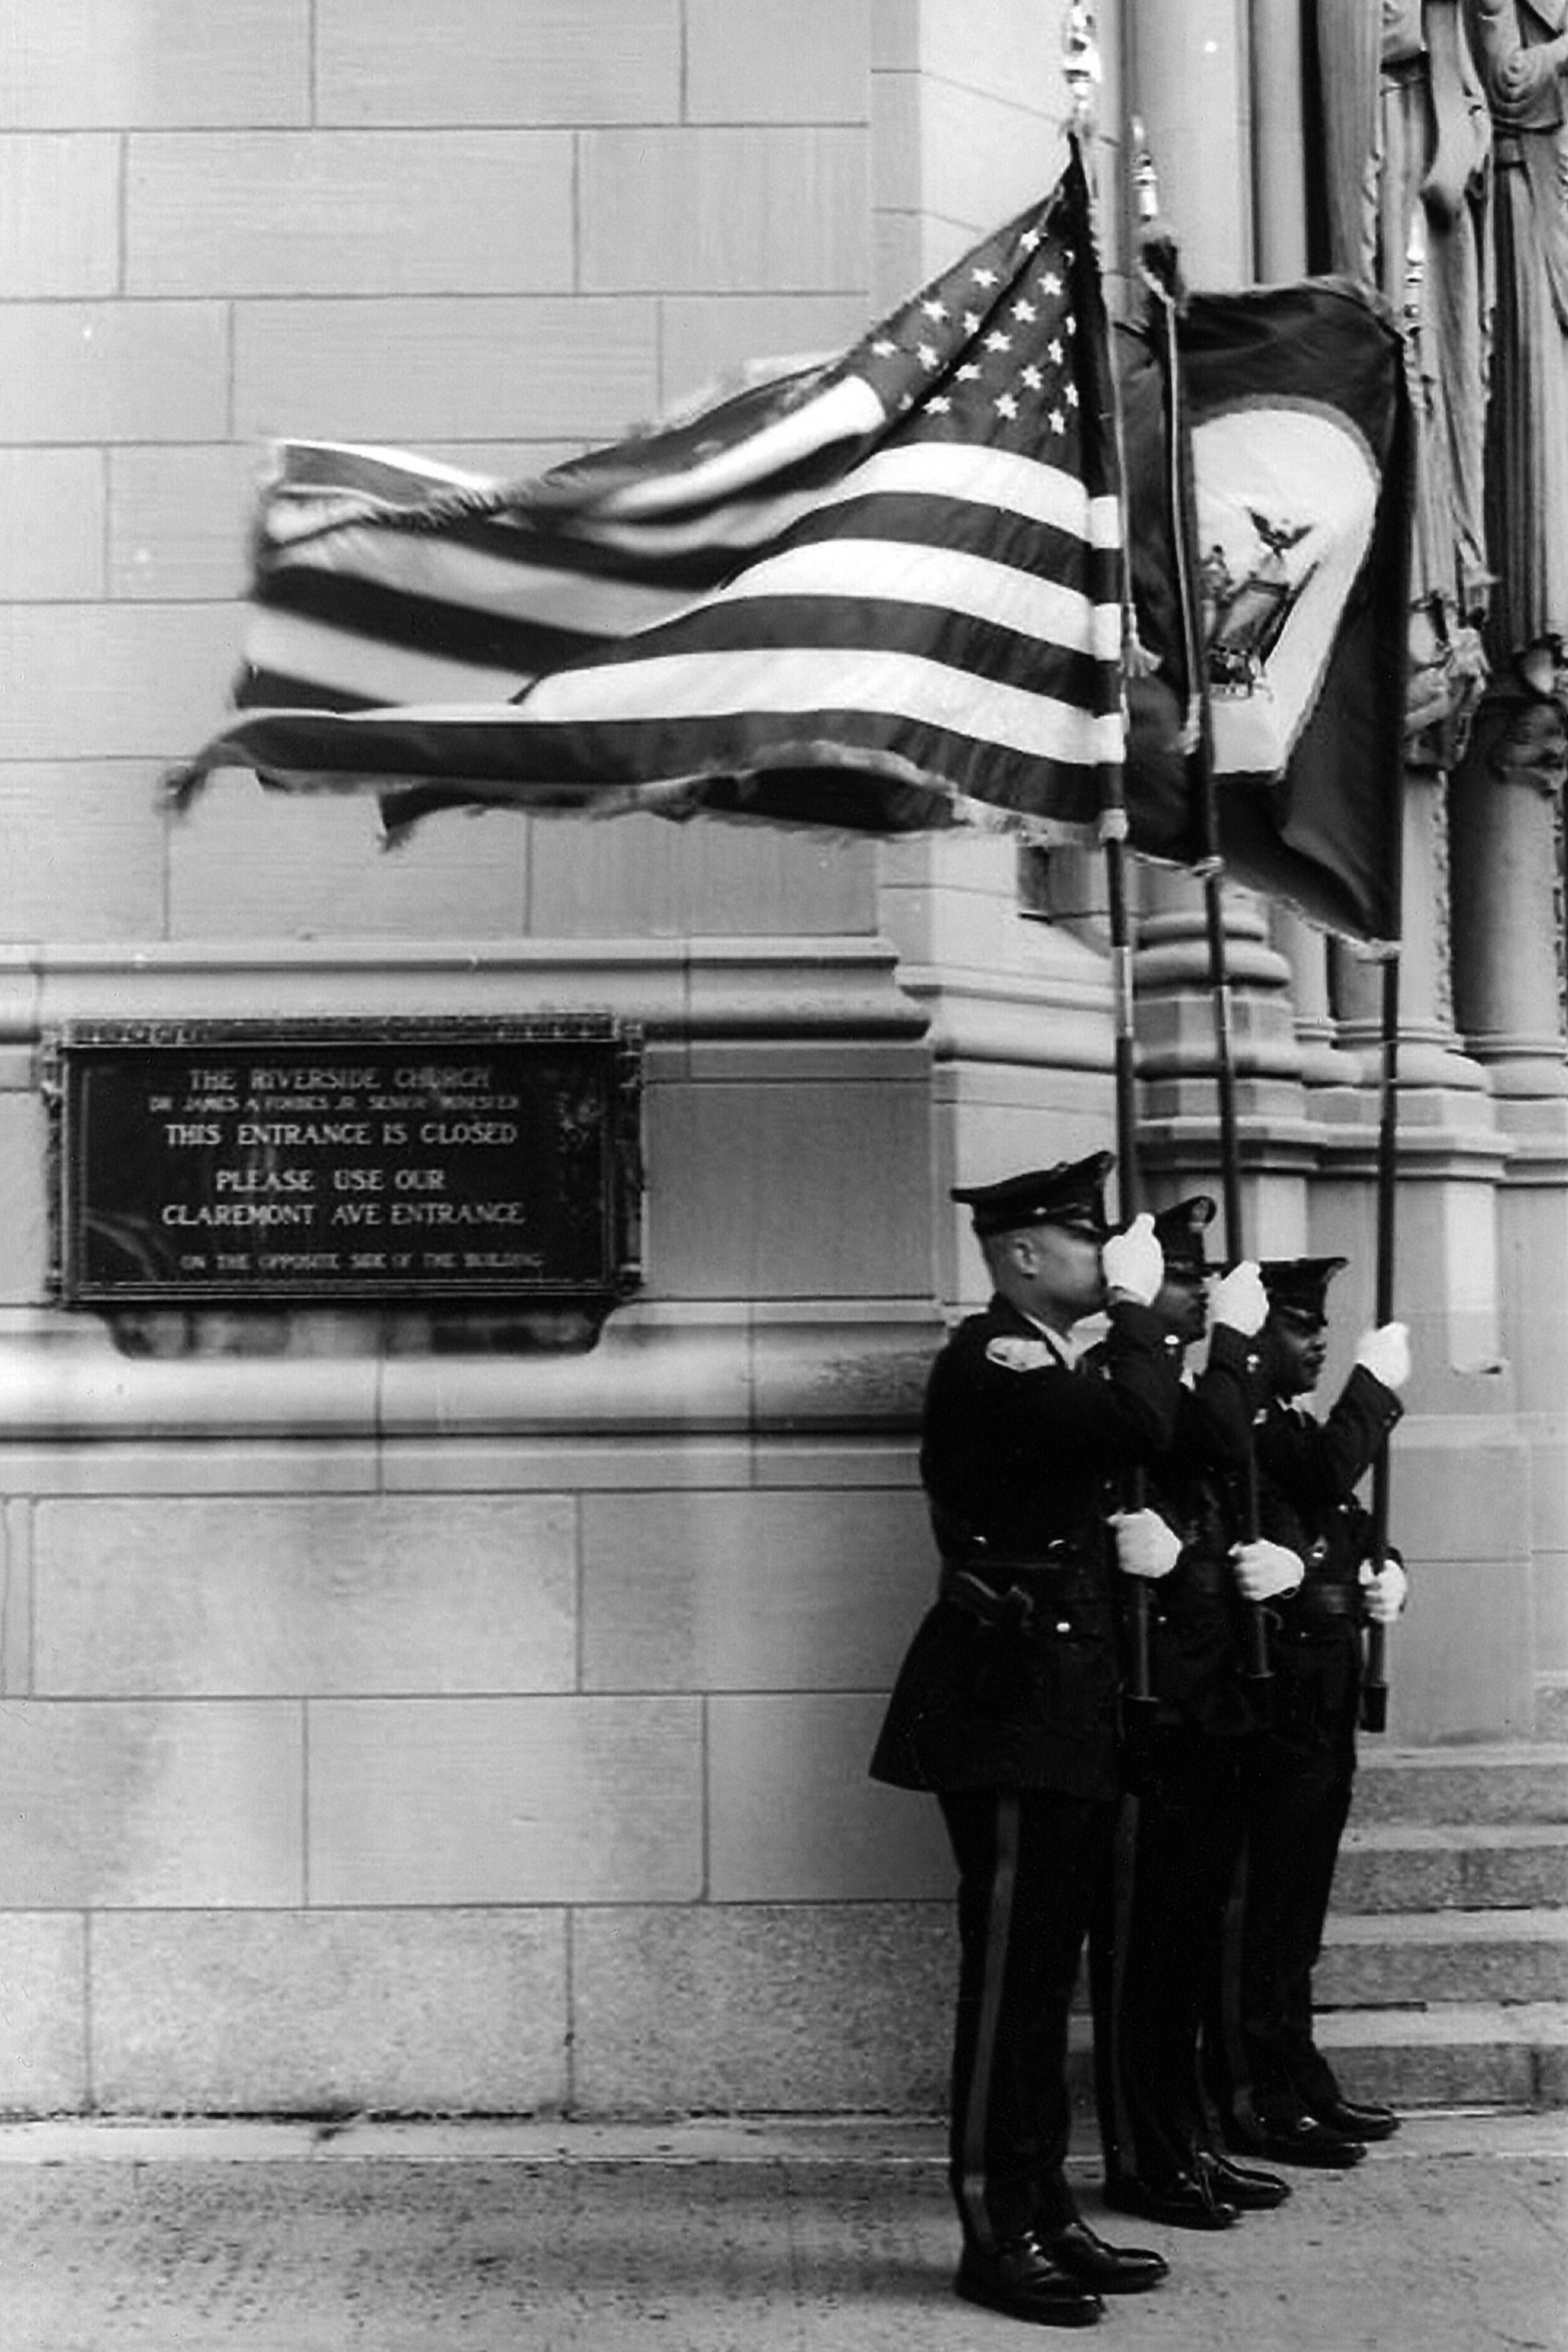 Memorial for Port Authority policemen who died on September 11, 2001, Riverside Church (2002)  —  [..] And then one day in 2001 it wasn't there. The city was in shock for several years - you can see it in the faces of the Port Authority officers, some of the 403 emergency workers who perished when the Towers came down. A lot of people thought that New York would never recover. But of course it did. Because New York is New York.